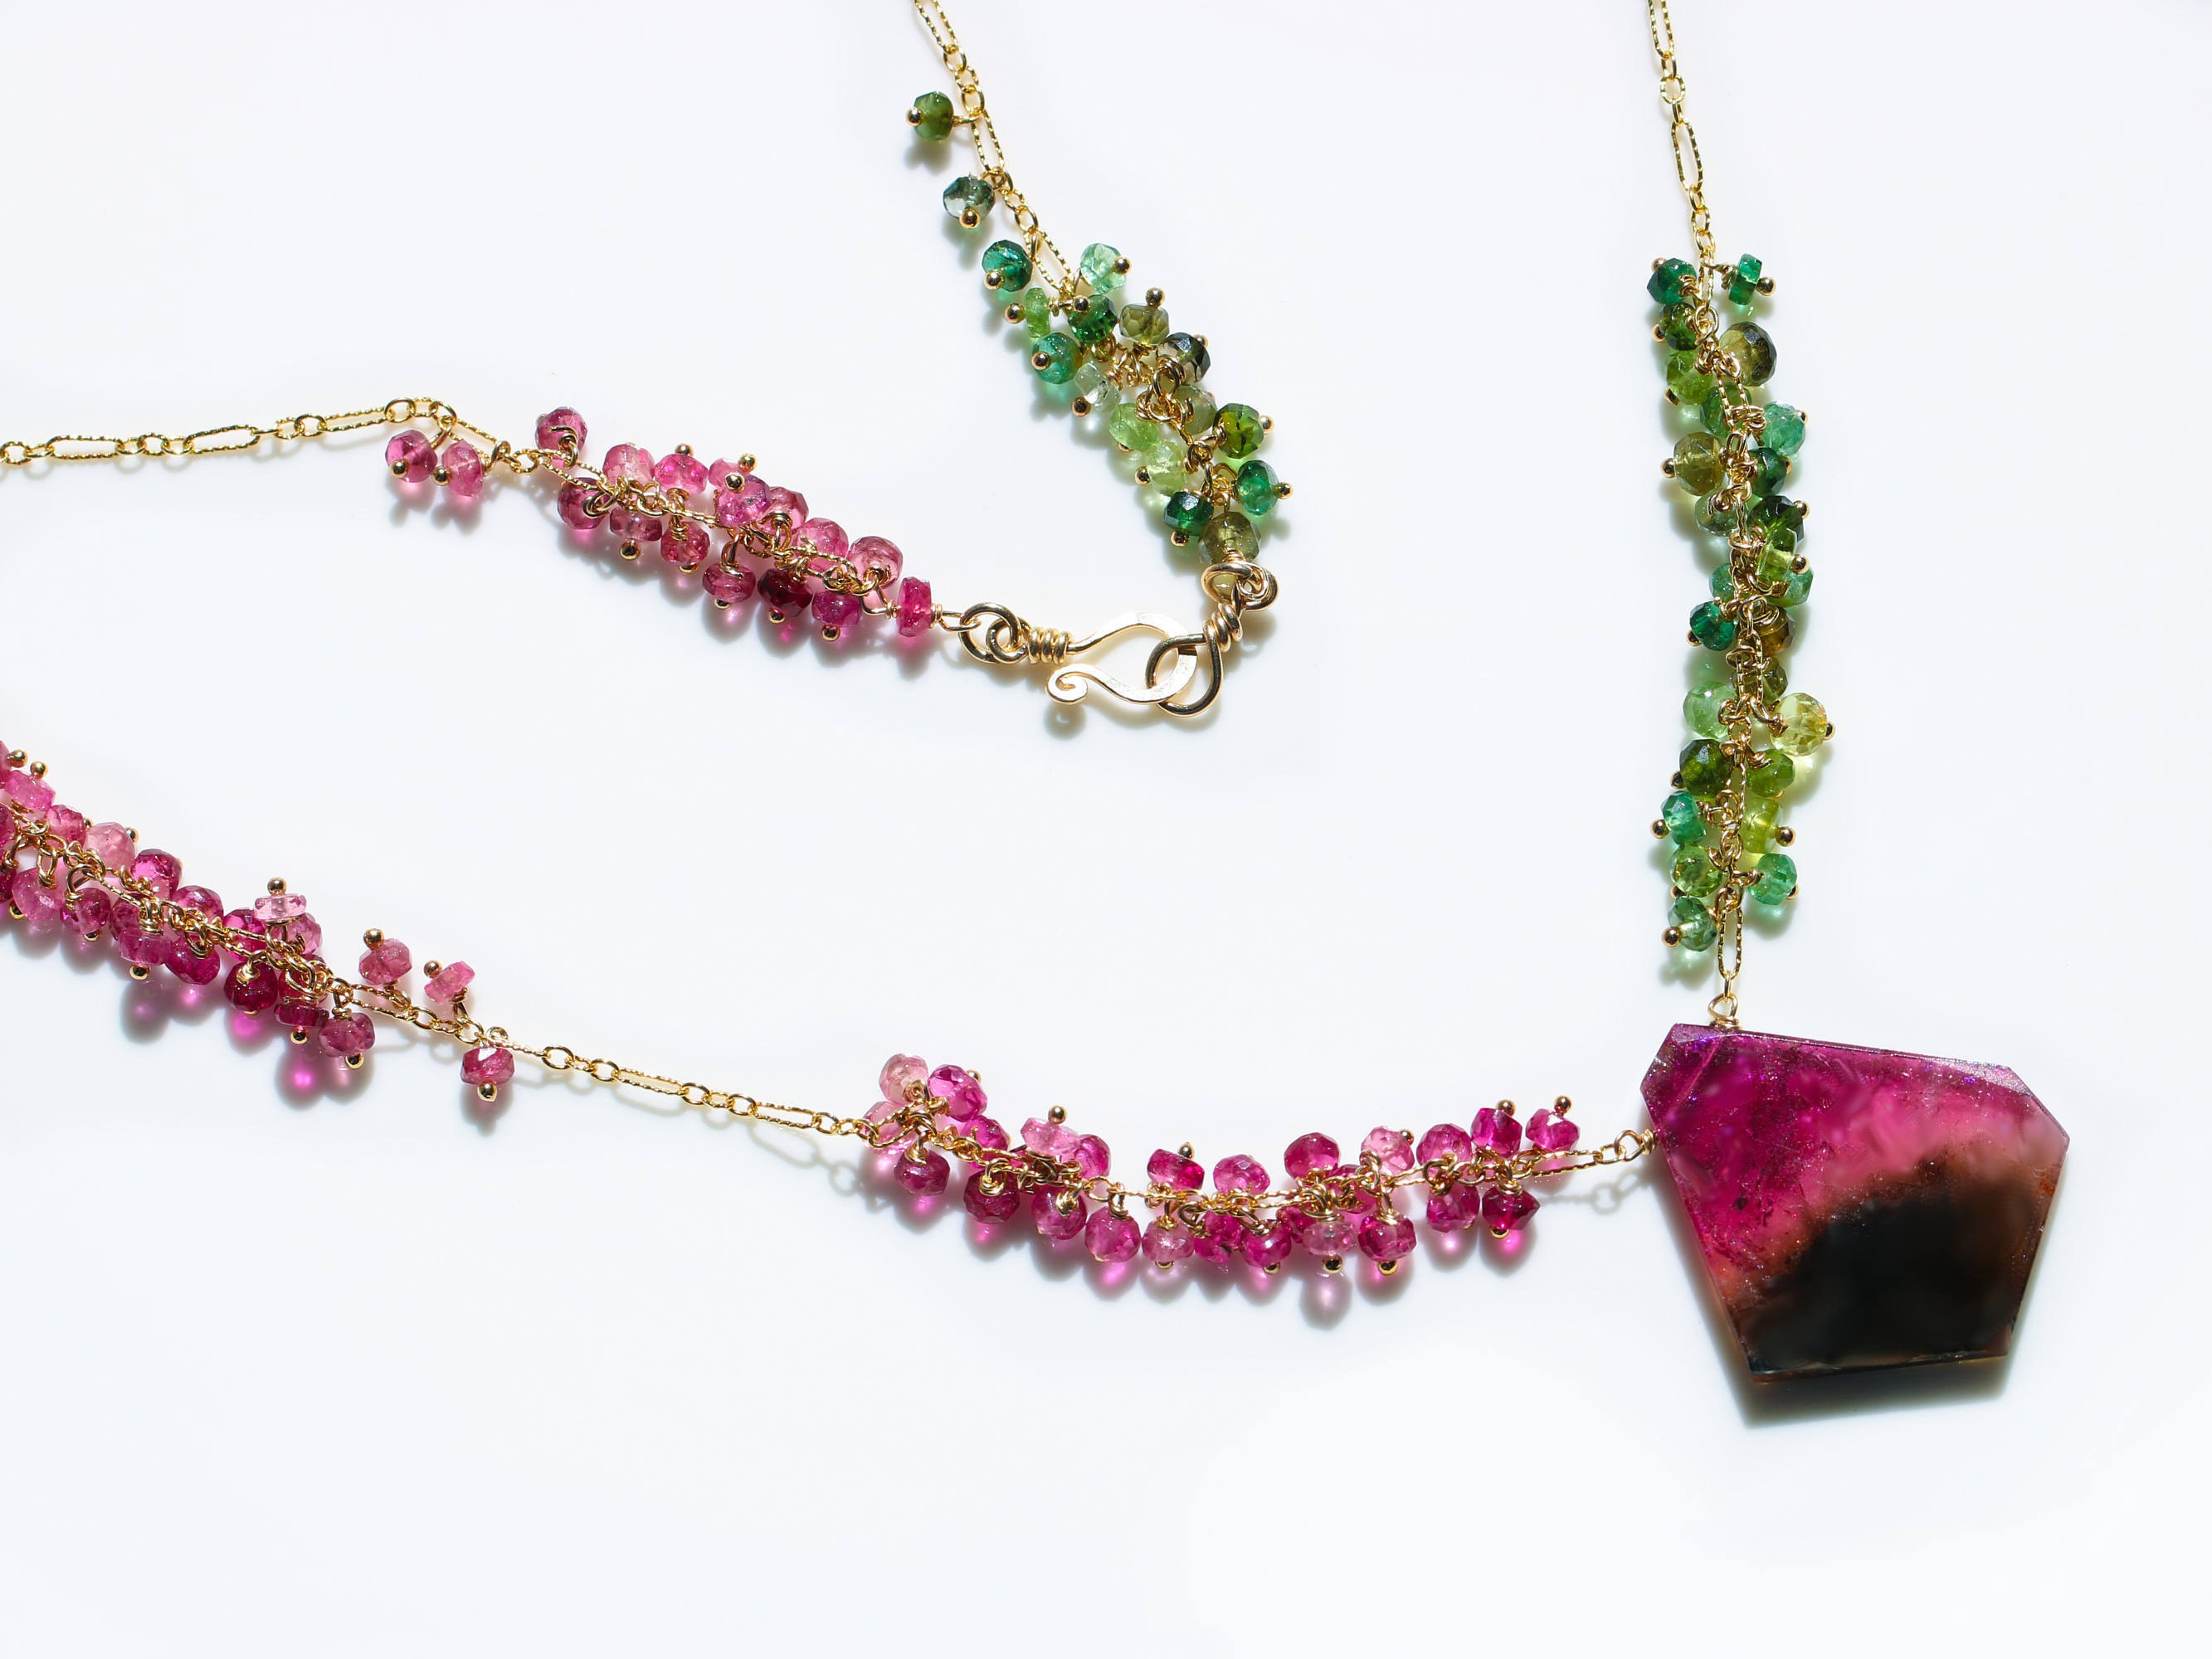 watermelon tourmaline slice necklace with pink and green